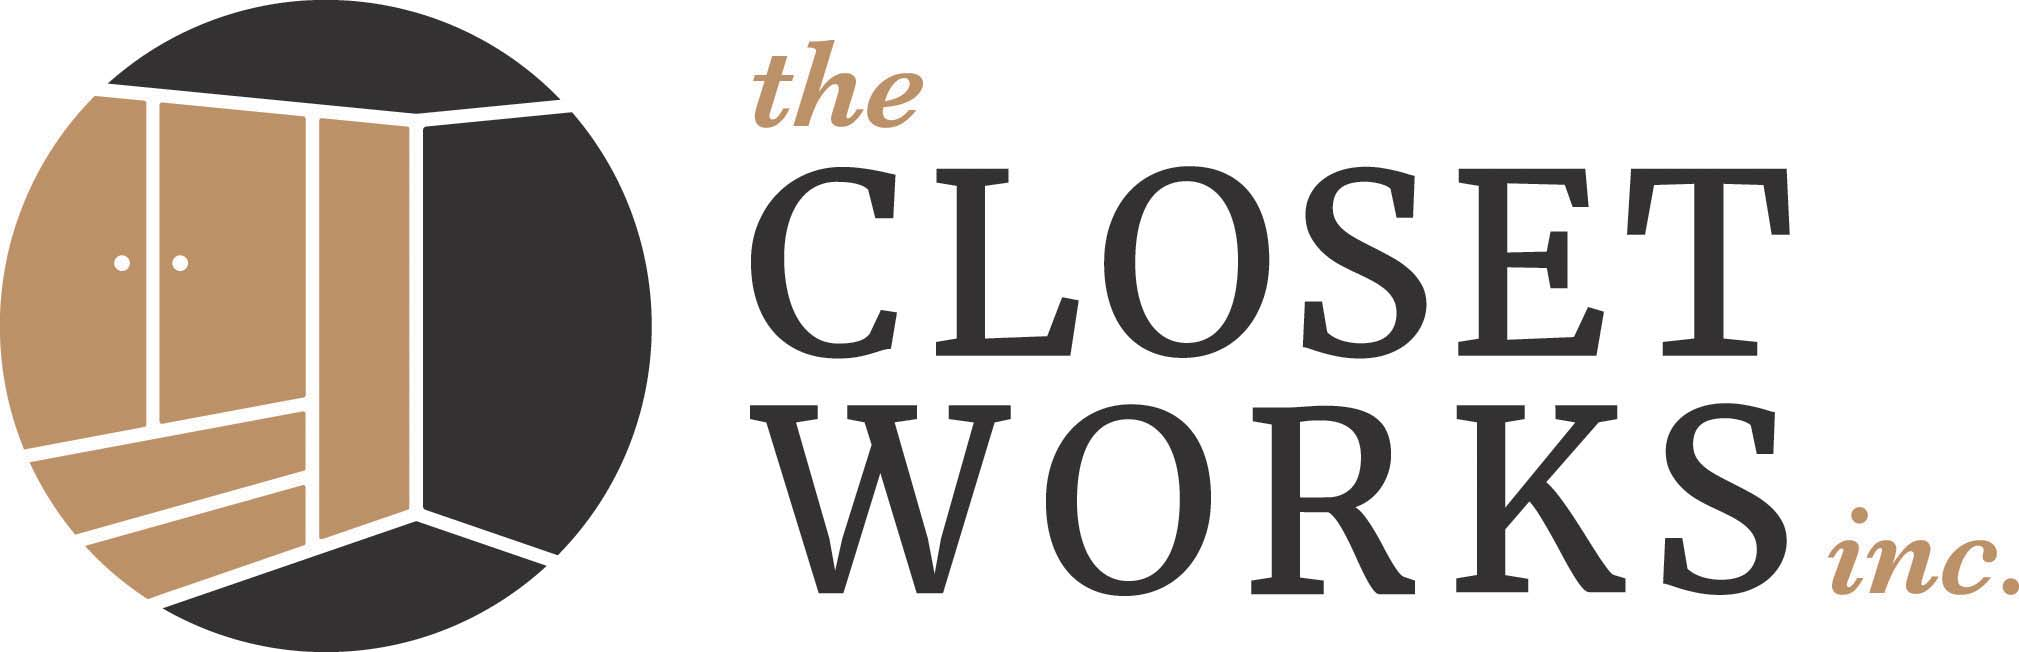 The Closet Works, Inc. logo